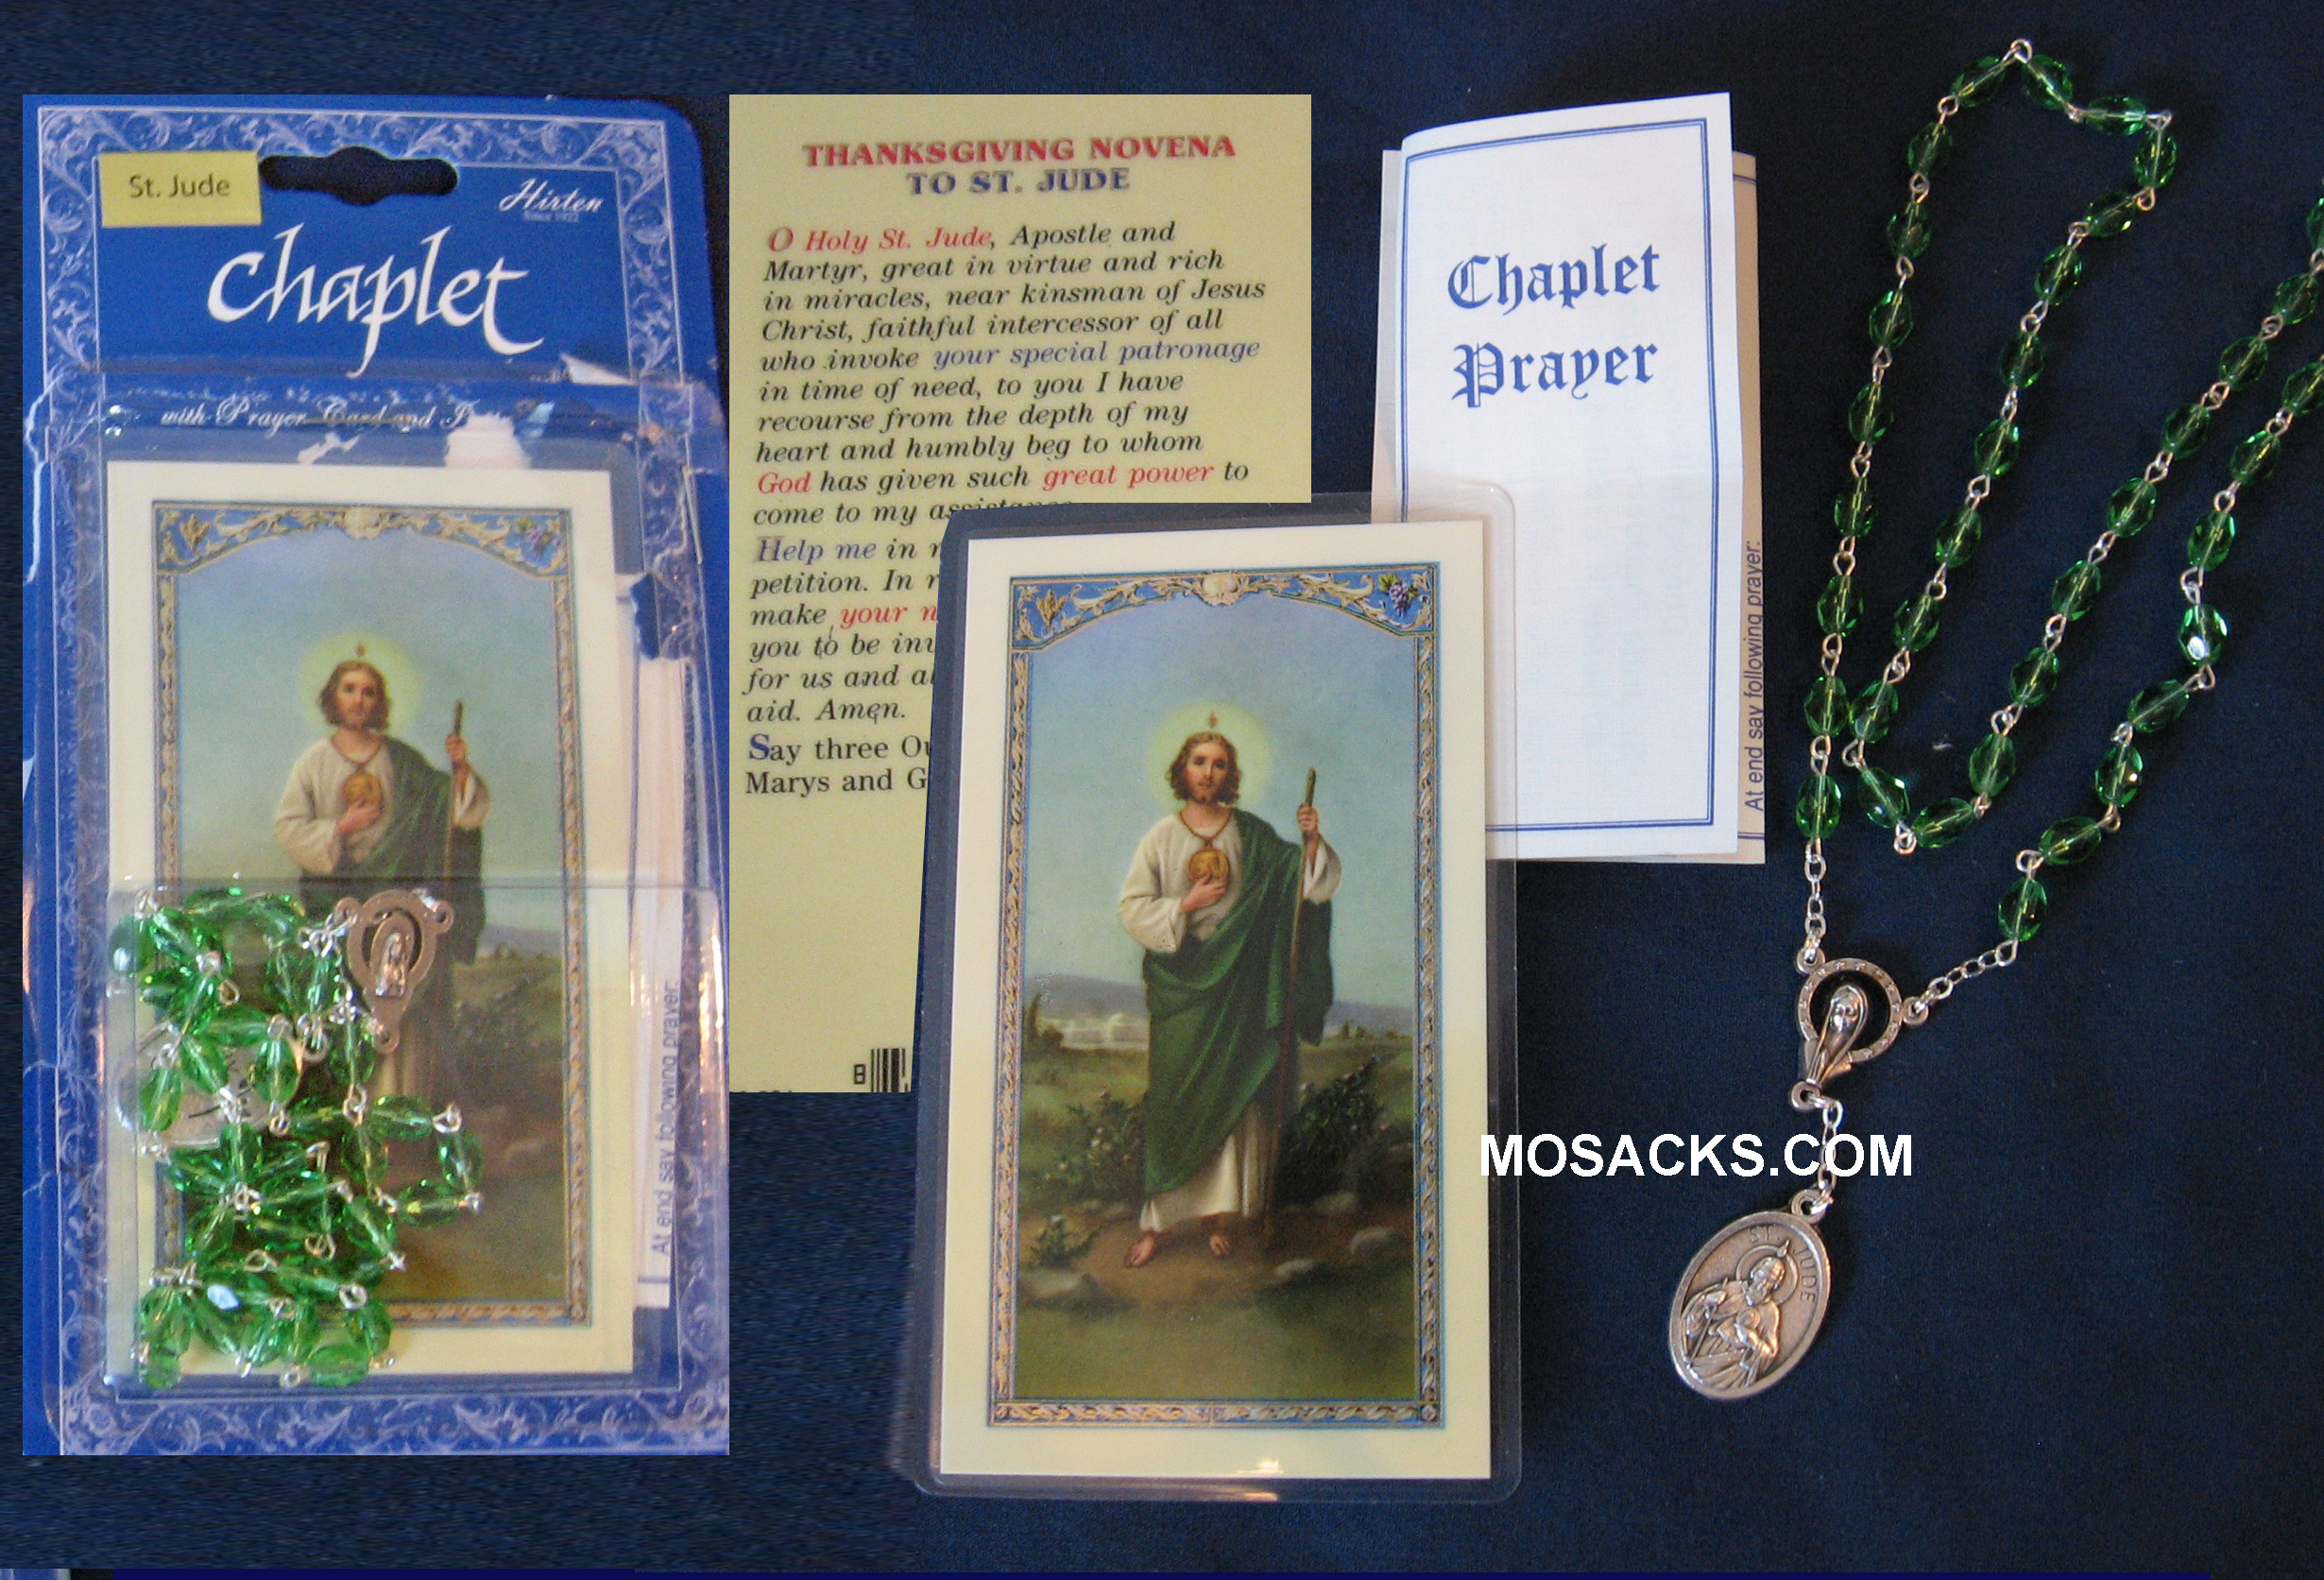 St. Jude Chaplet and Prayer Card, 044